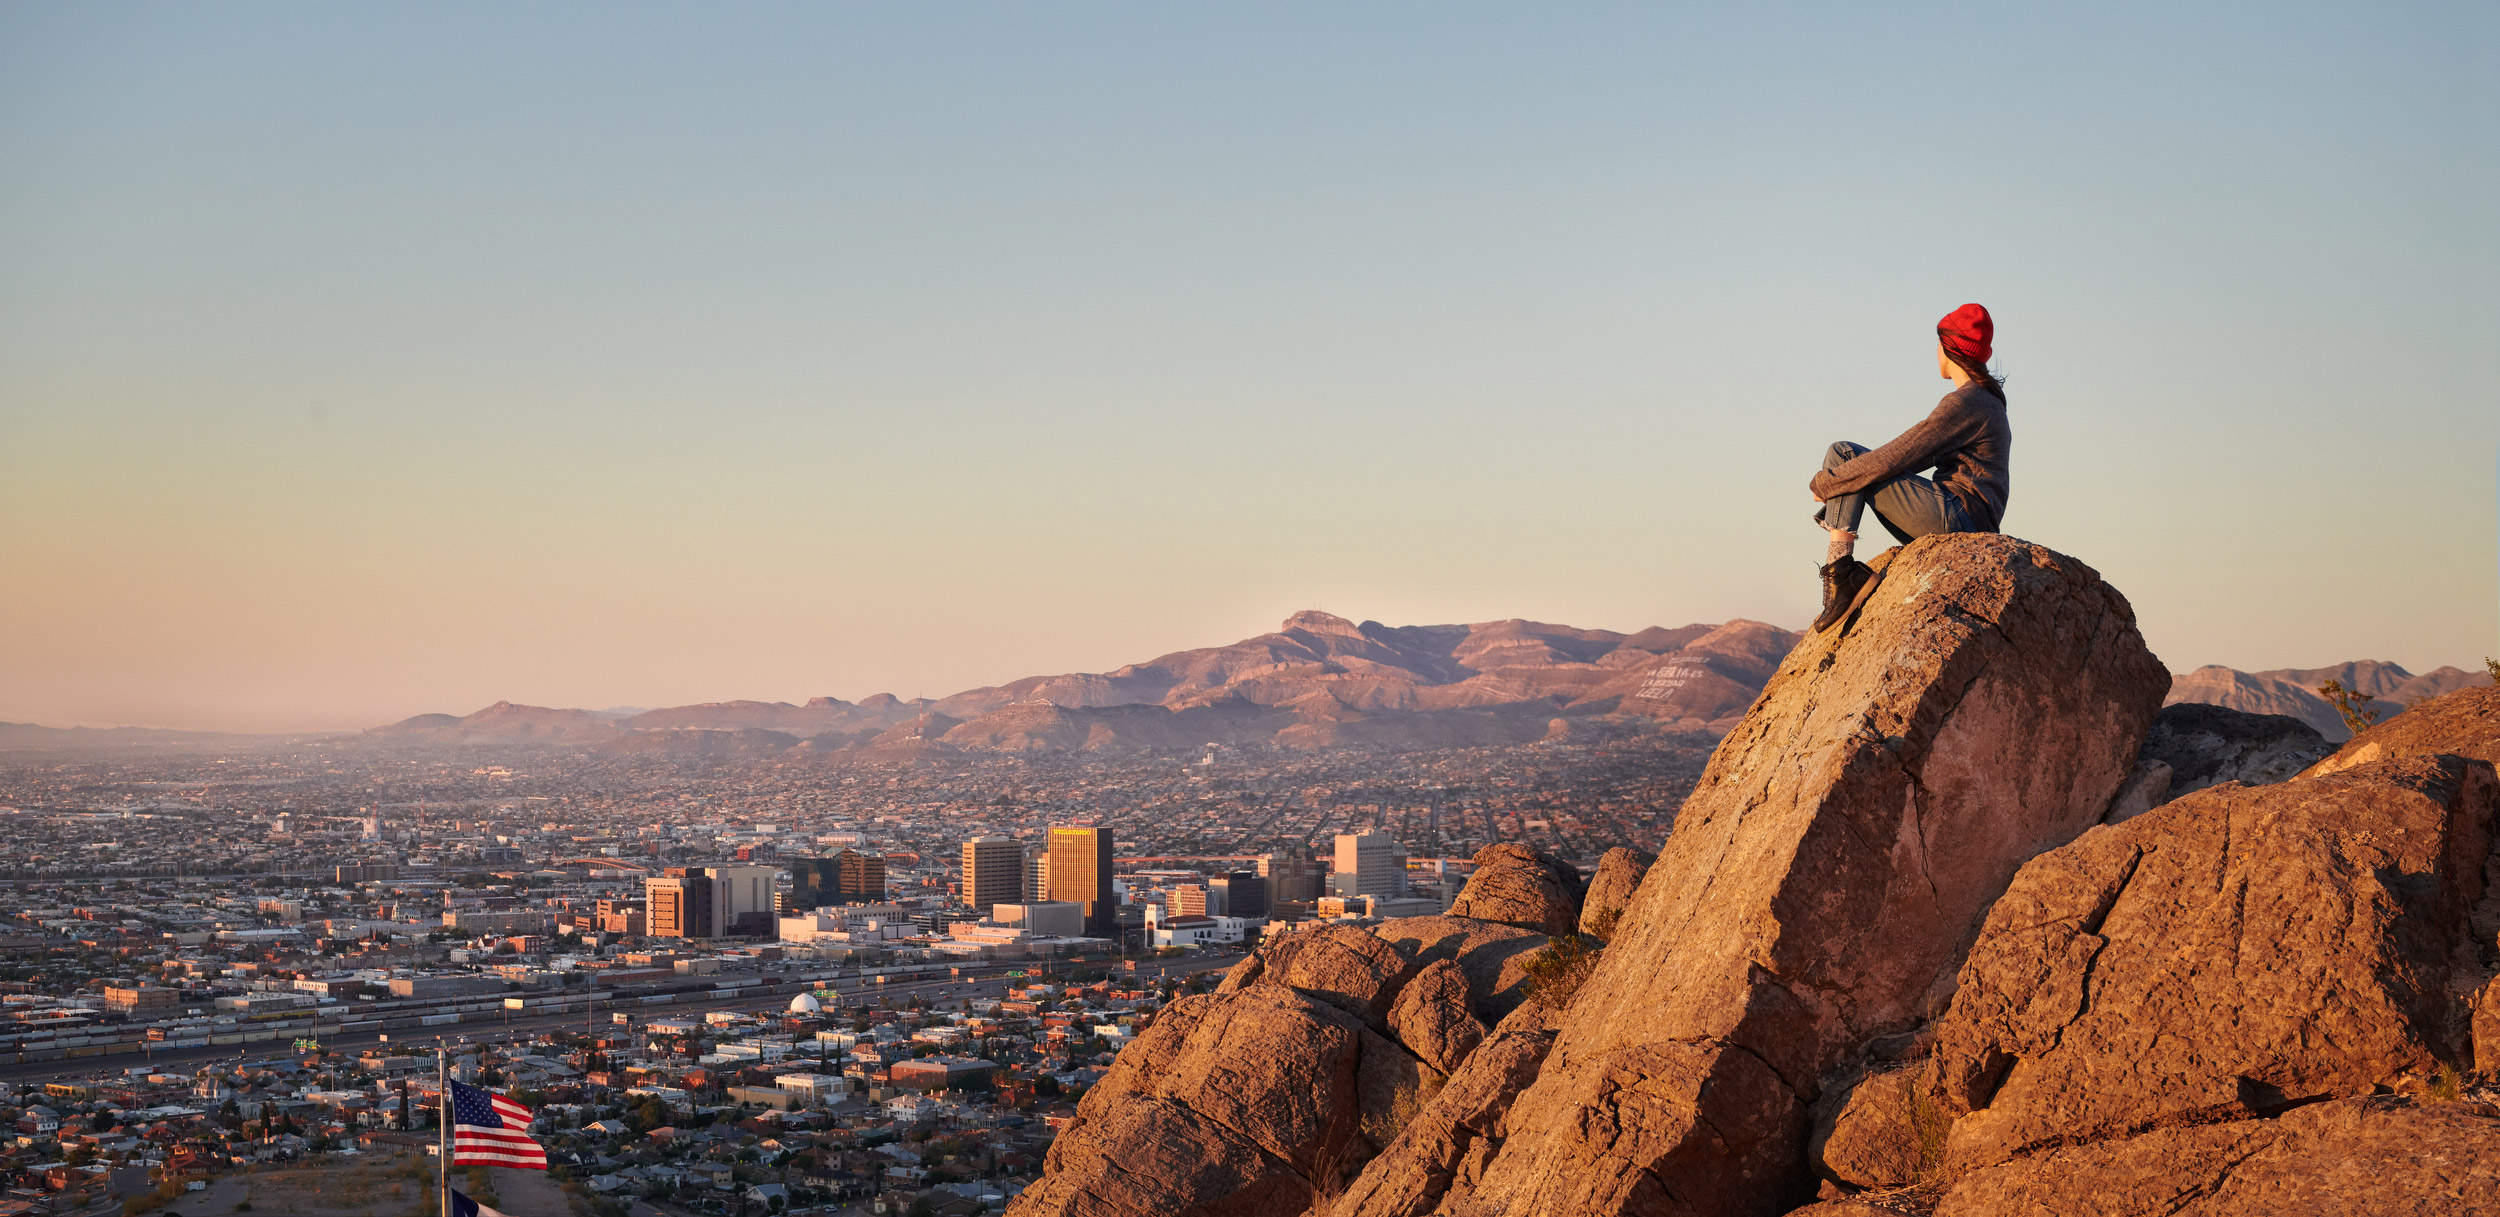 Nick_Simonite_ScenicOverlook_ElPaso_Texas